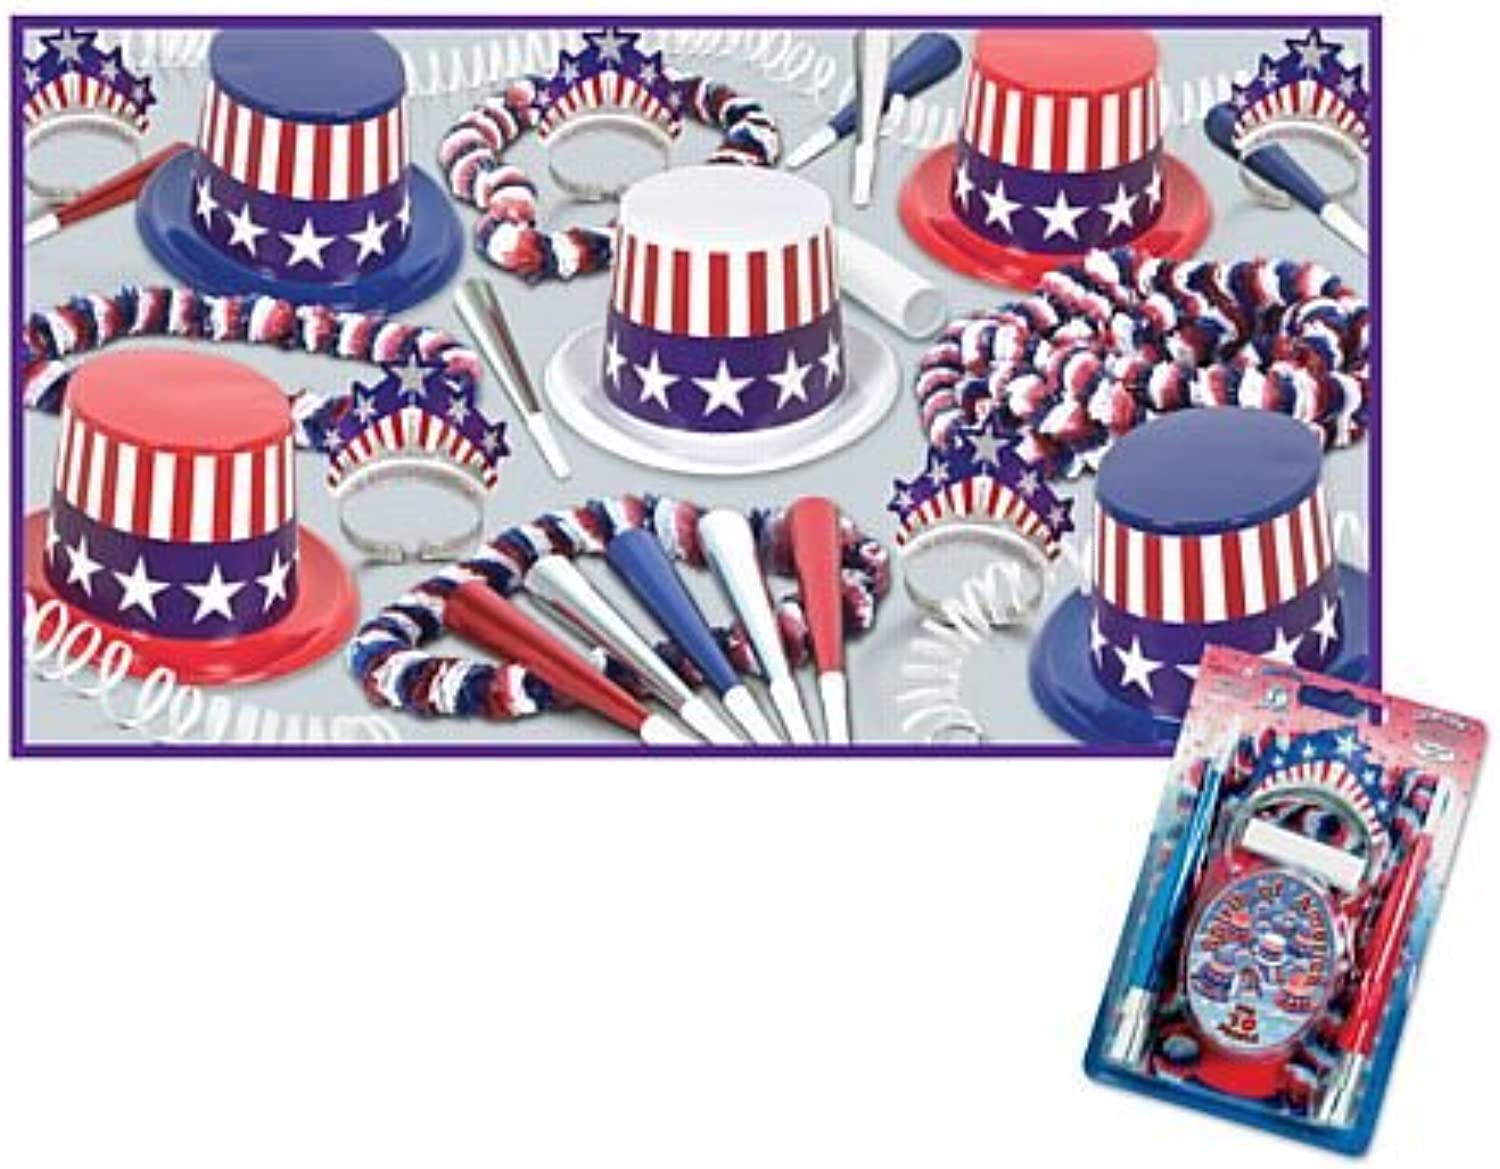 IdealWigsNet Spirit of America Hat and Novelty Party Pack For 10 People